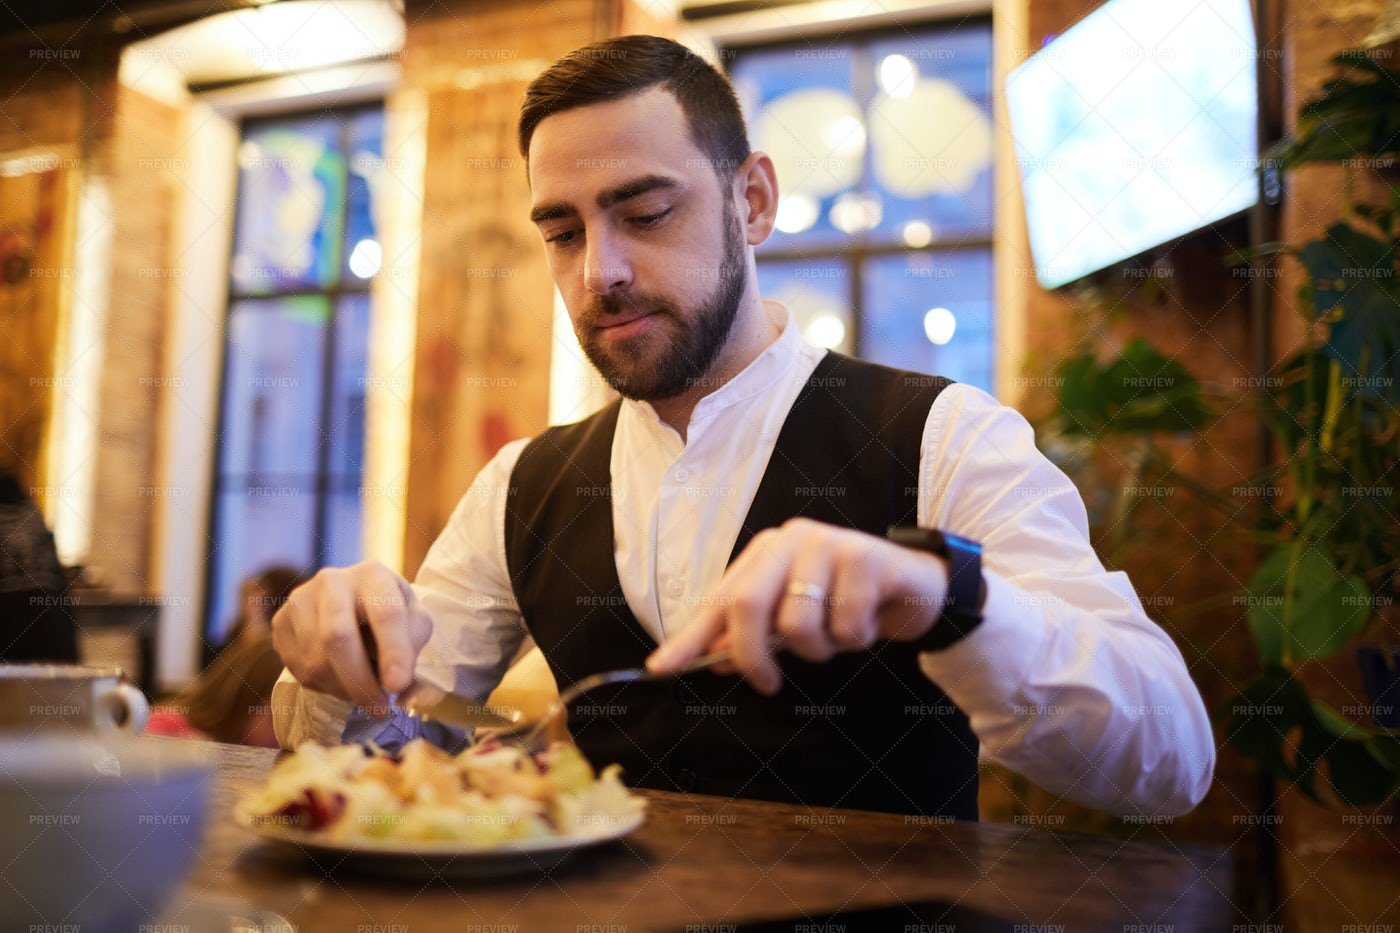 Businessman Eating In Cafe: Stock Photos